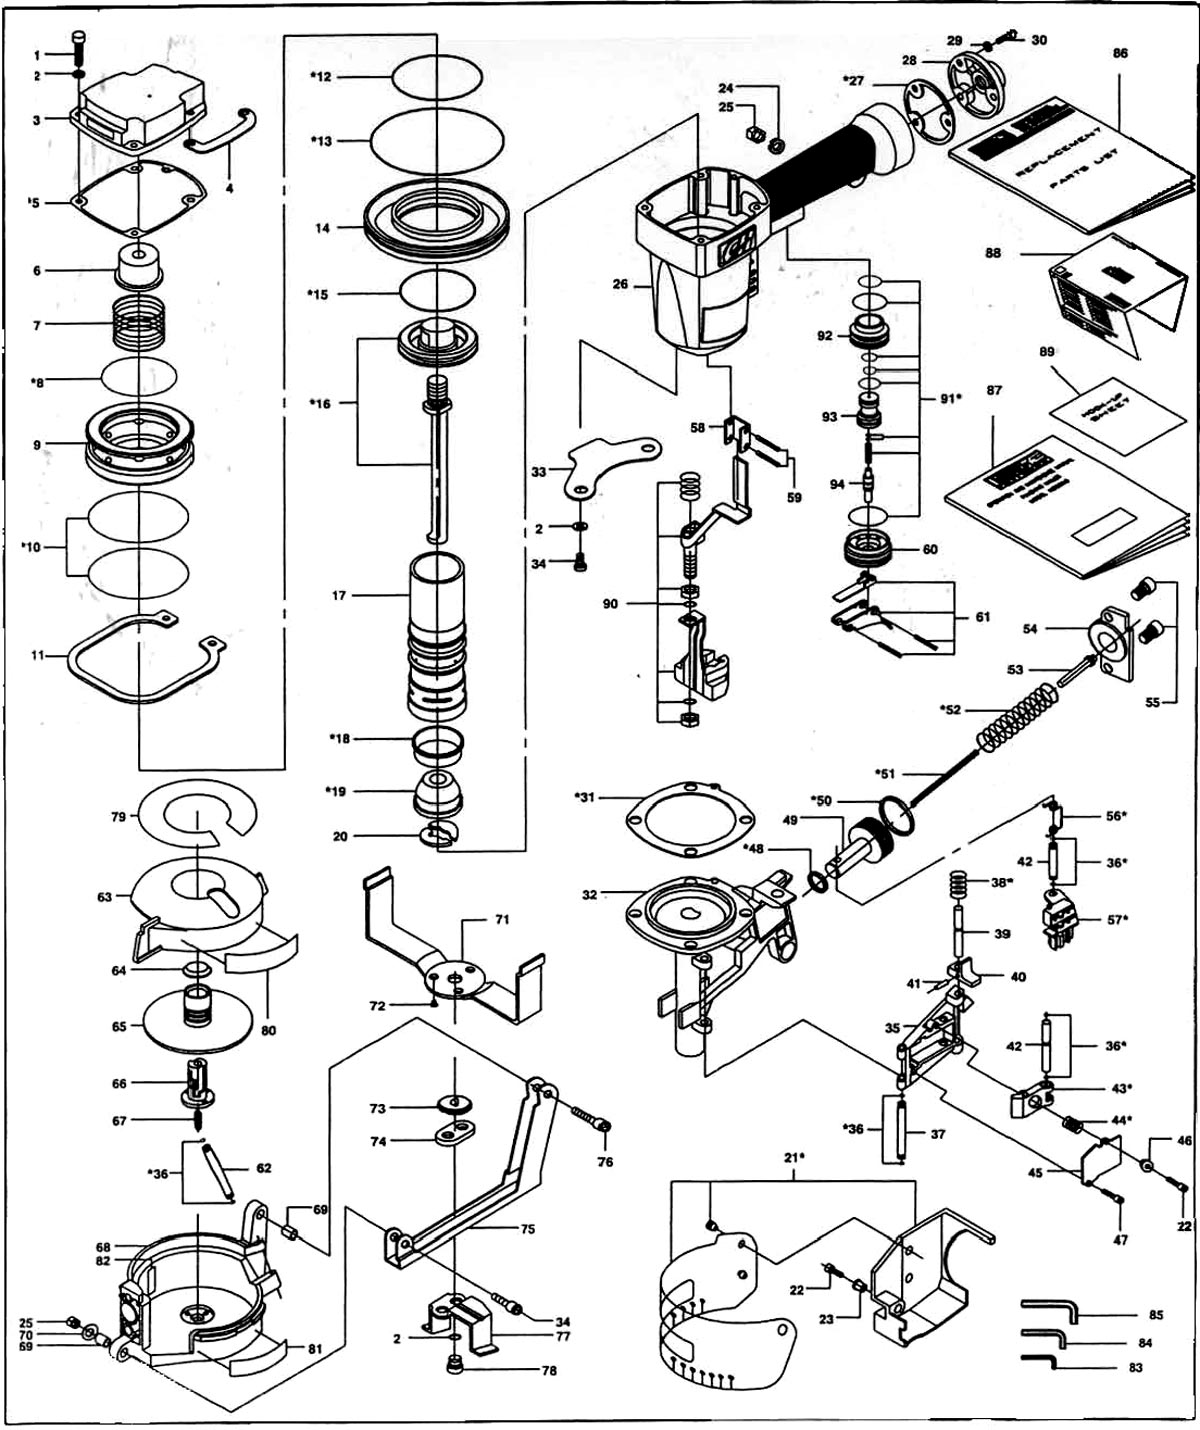 RN1545, RN154500 - Pneumatic Coil Roofing Nailer Parts schematic